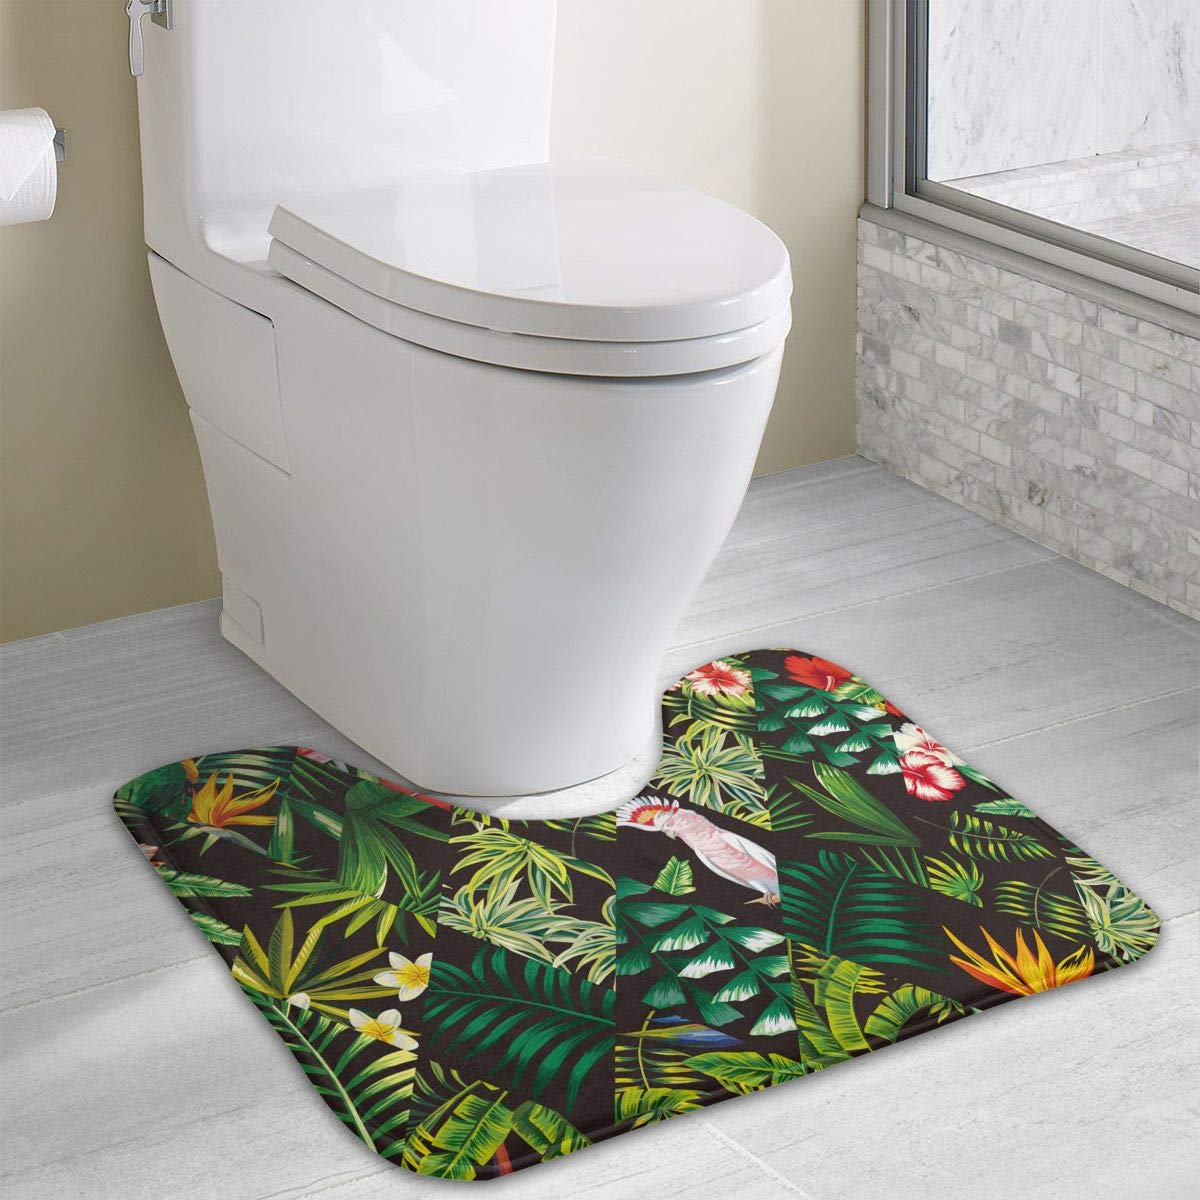 Quilted Toilet Seat Cover Pattern Free Quilt Patterns